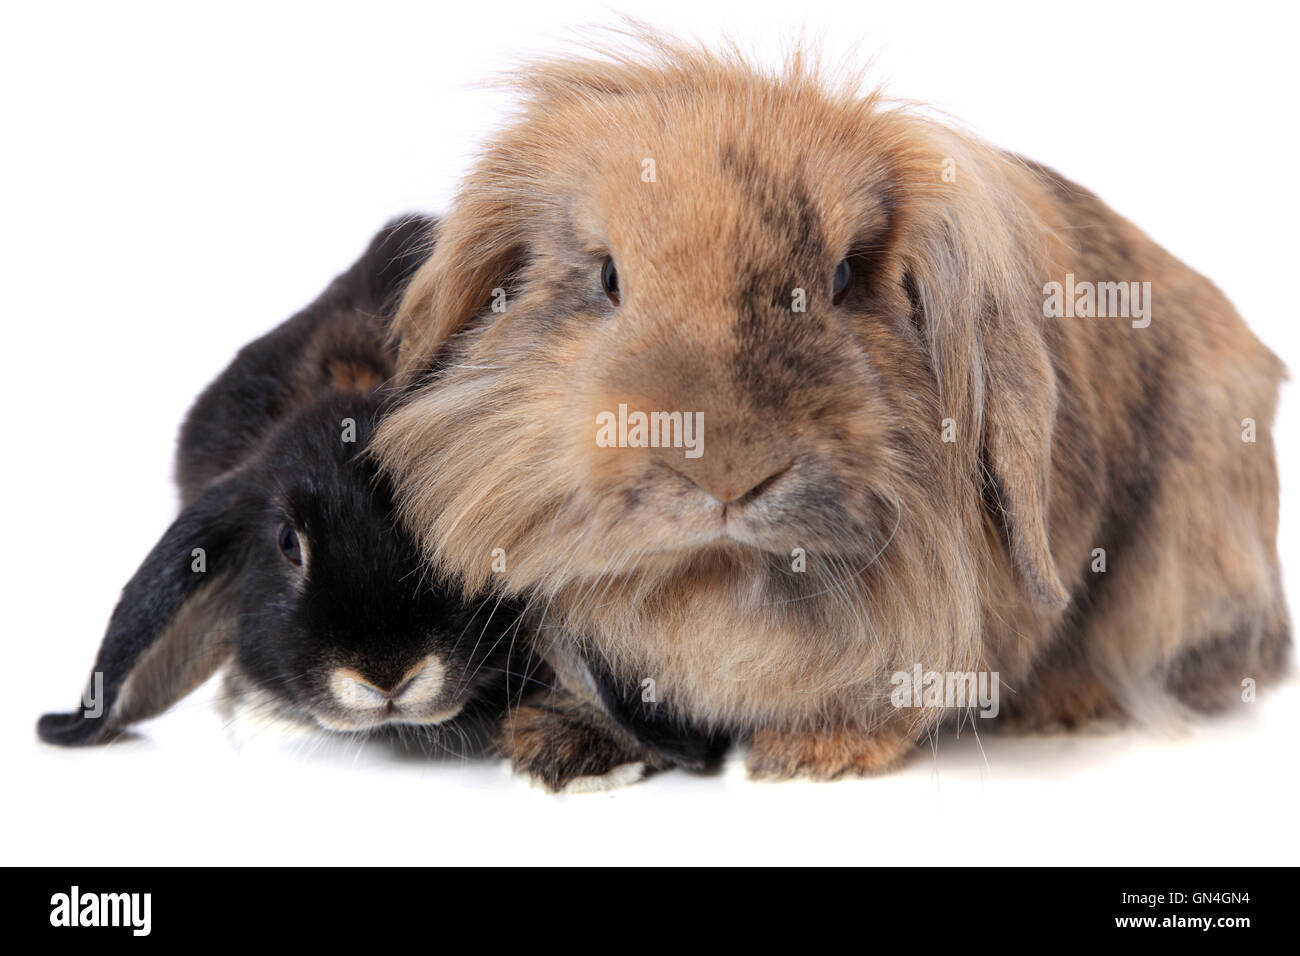 Two rabbits - Stock Image